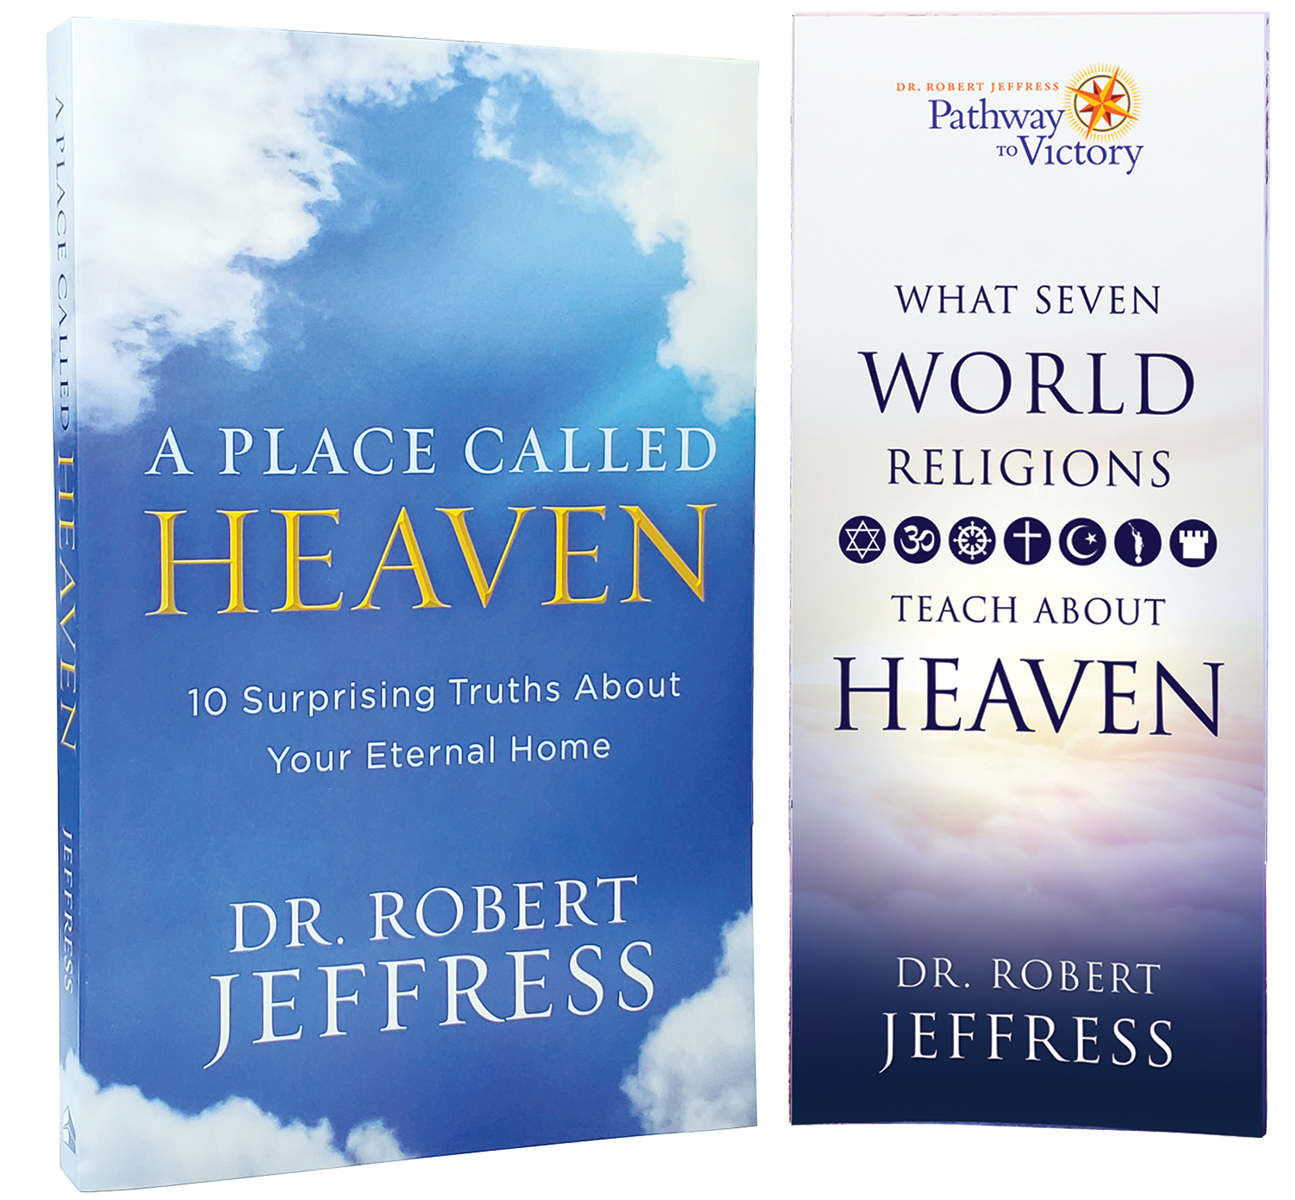 A Place Called Heaven soft-cover book + What Seven World Religions Teach About Heaven brochure